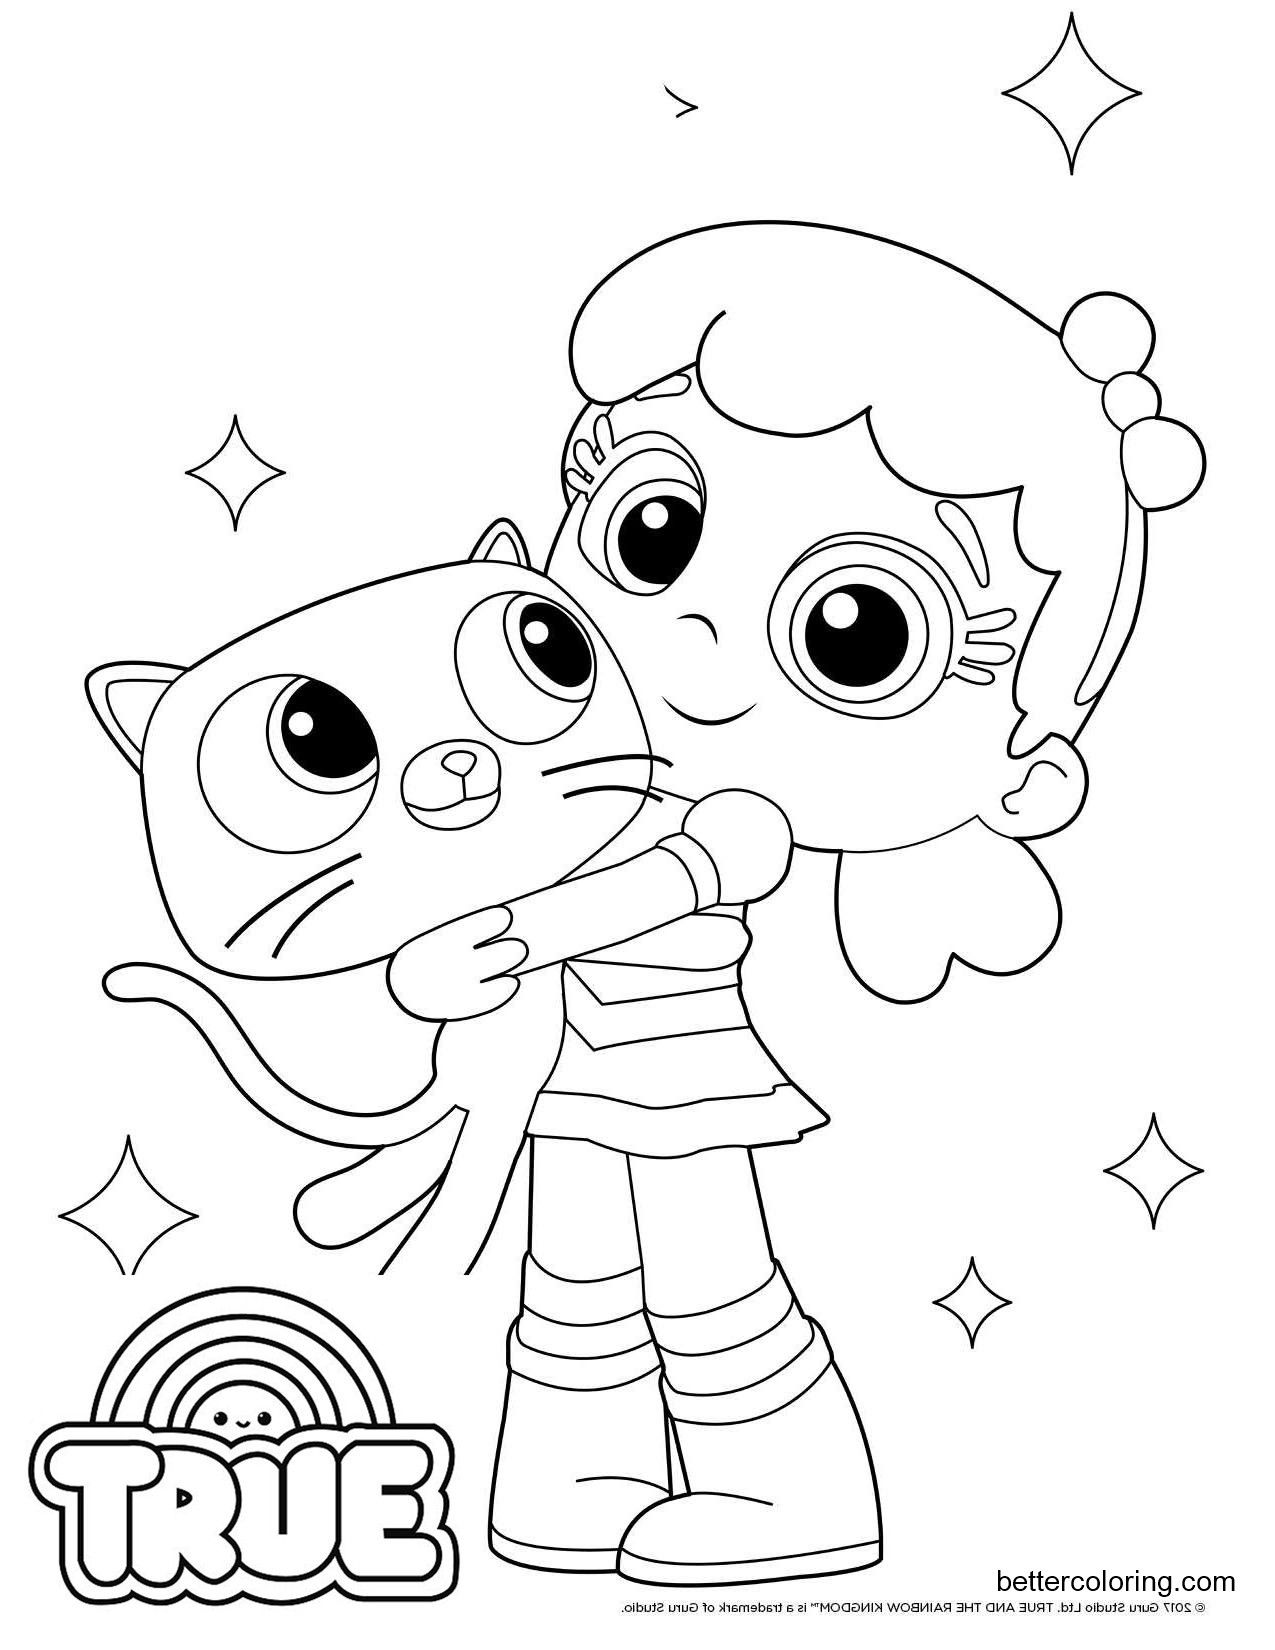 rainbow kingdom coloring pages 15 free printable true and the rainbow kingdom coloring pages rainbow pages kingdom coloring